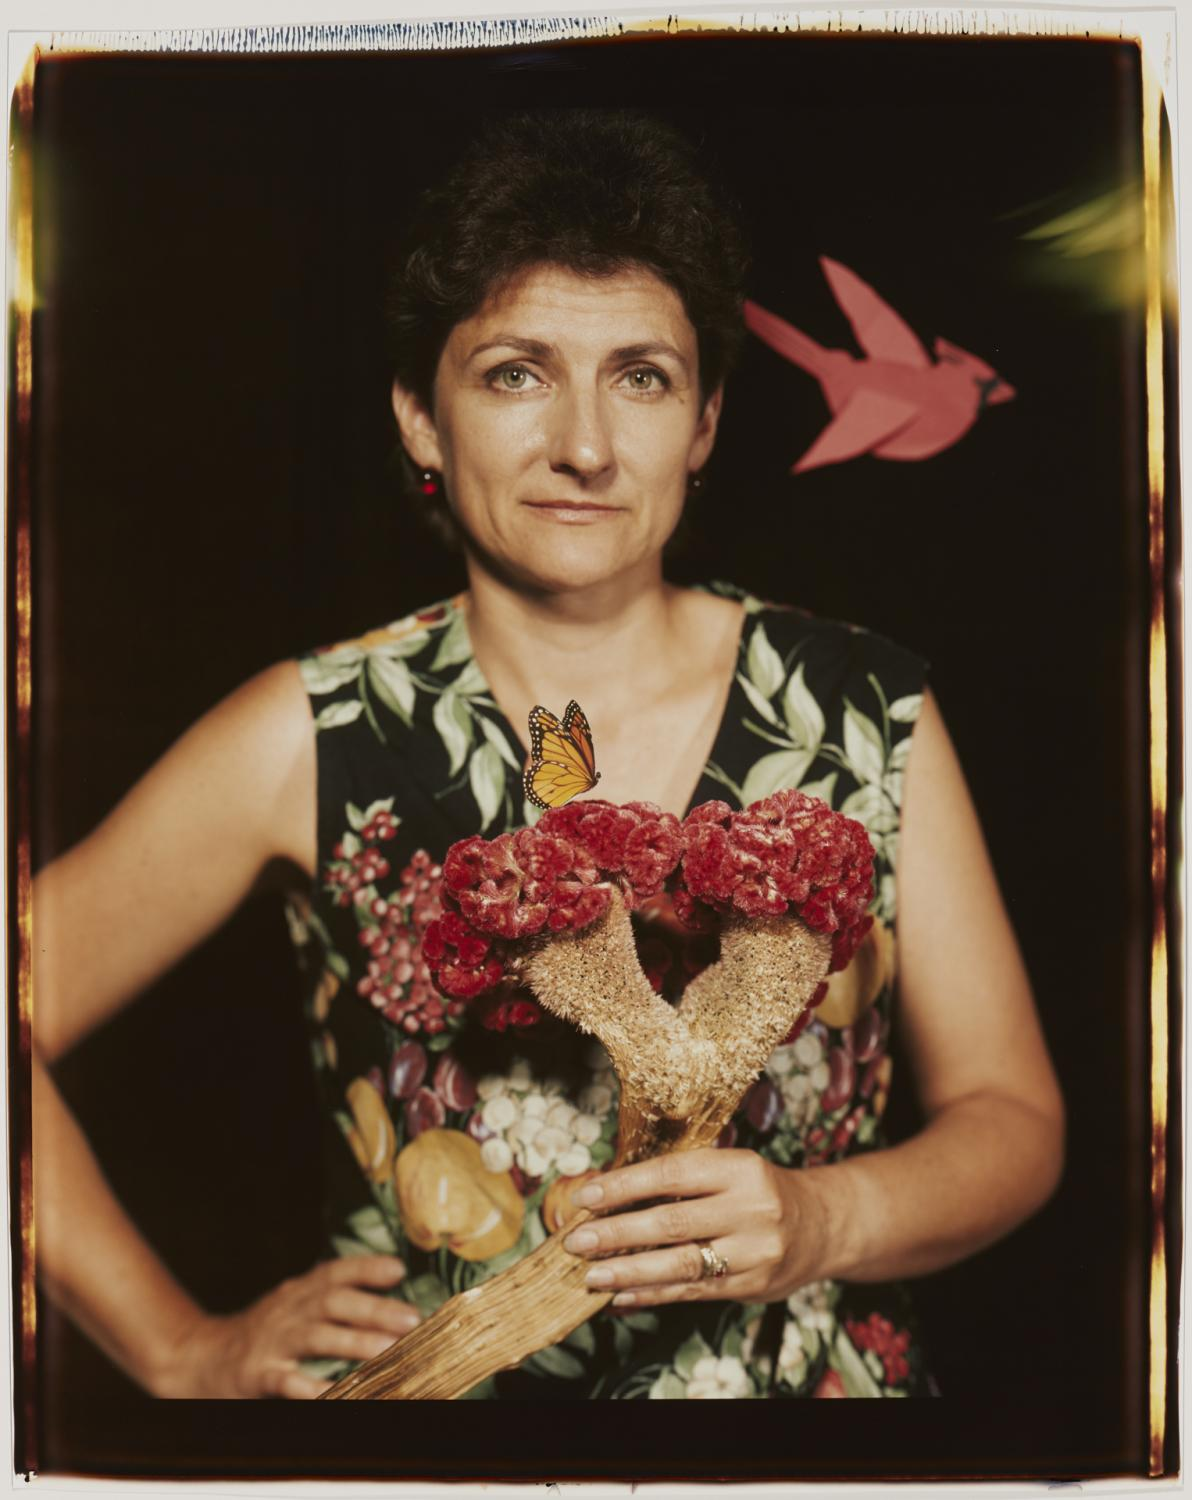 Self-portait of Bea Nettles in a flowered dress standing against a dark background. Her dress is a brightly colored hawaiian print, and she has a flower in her short hair and flowers in her left hand. She smiles slightly at the viewer.